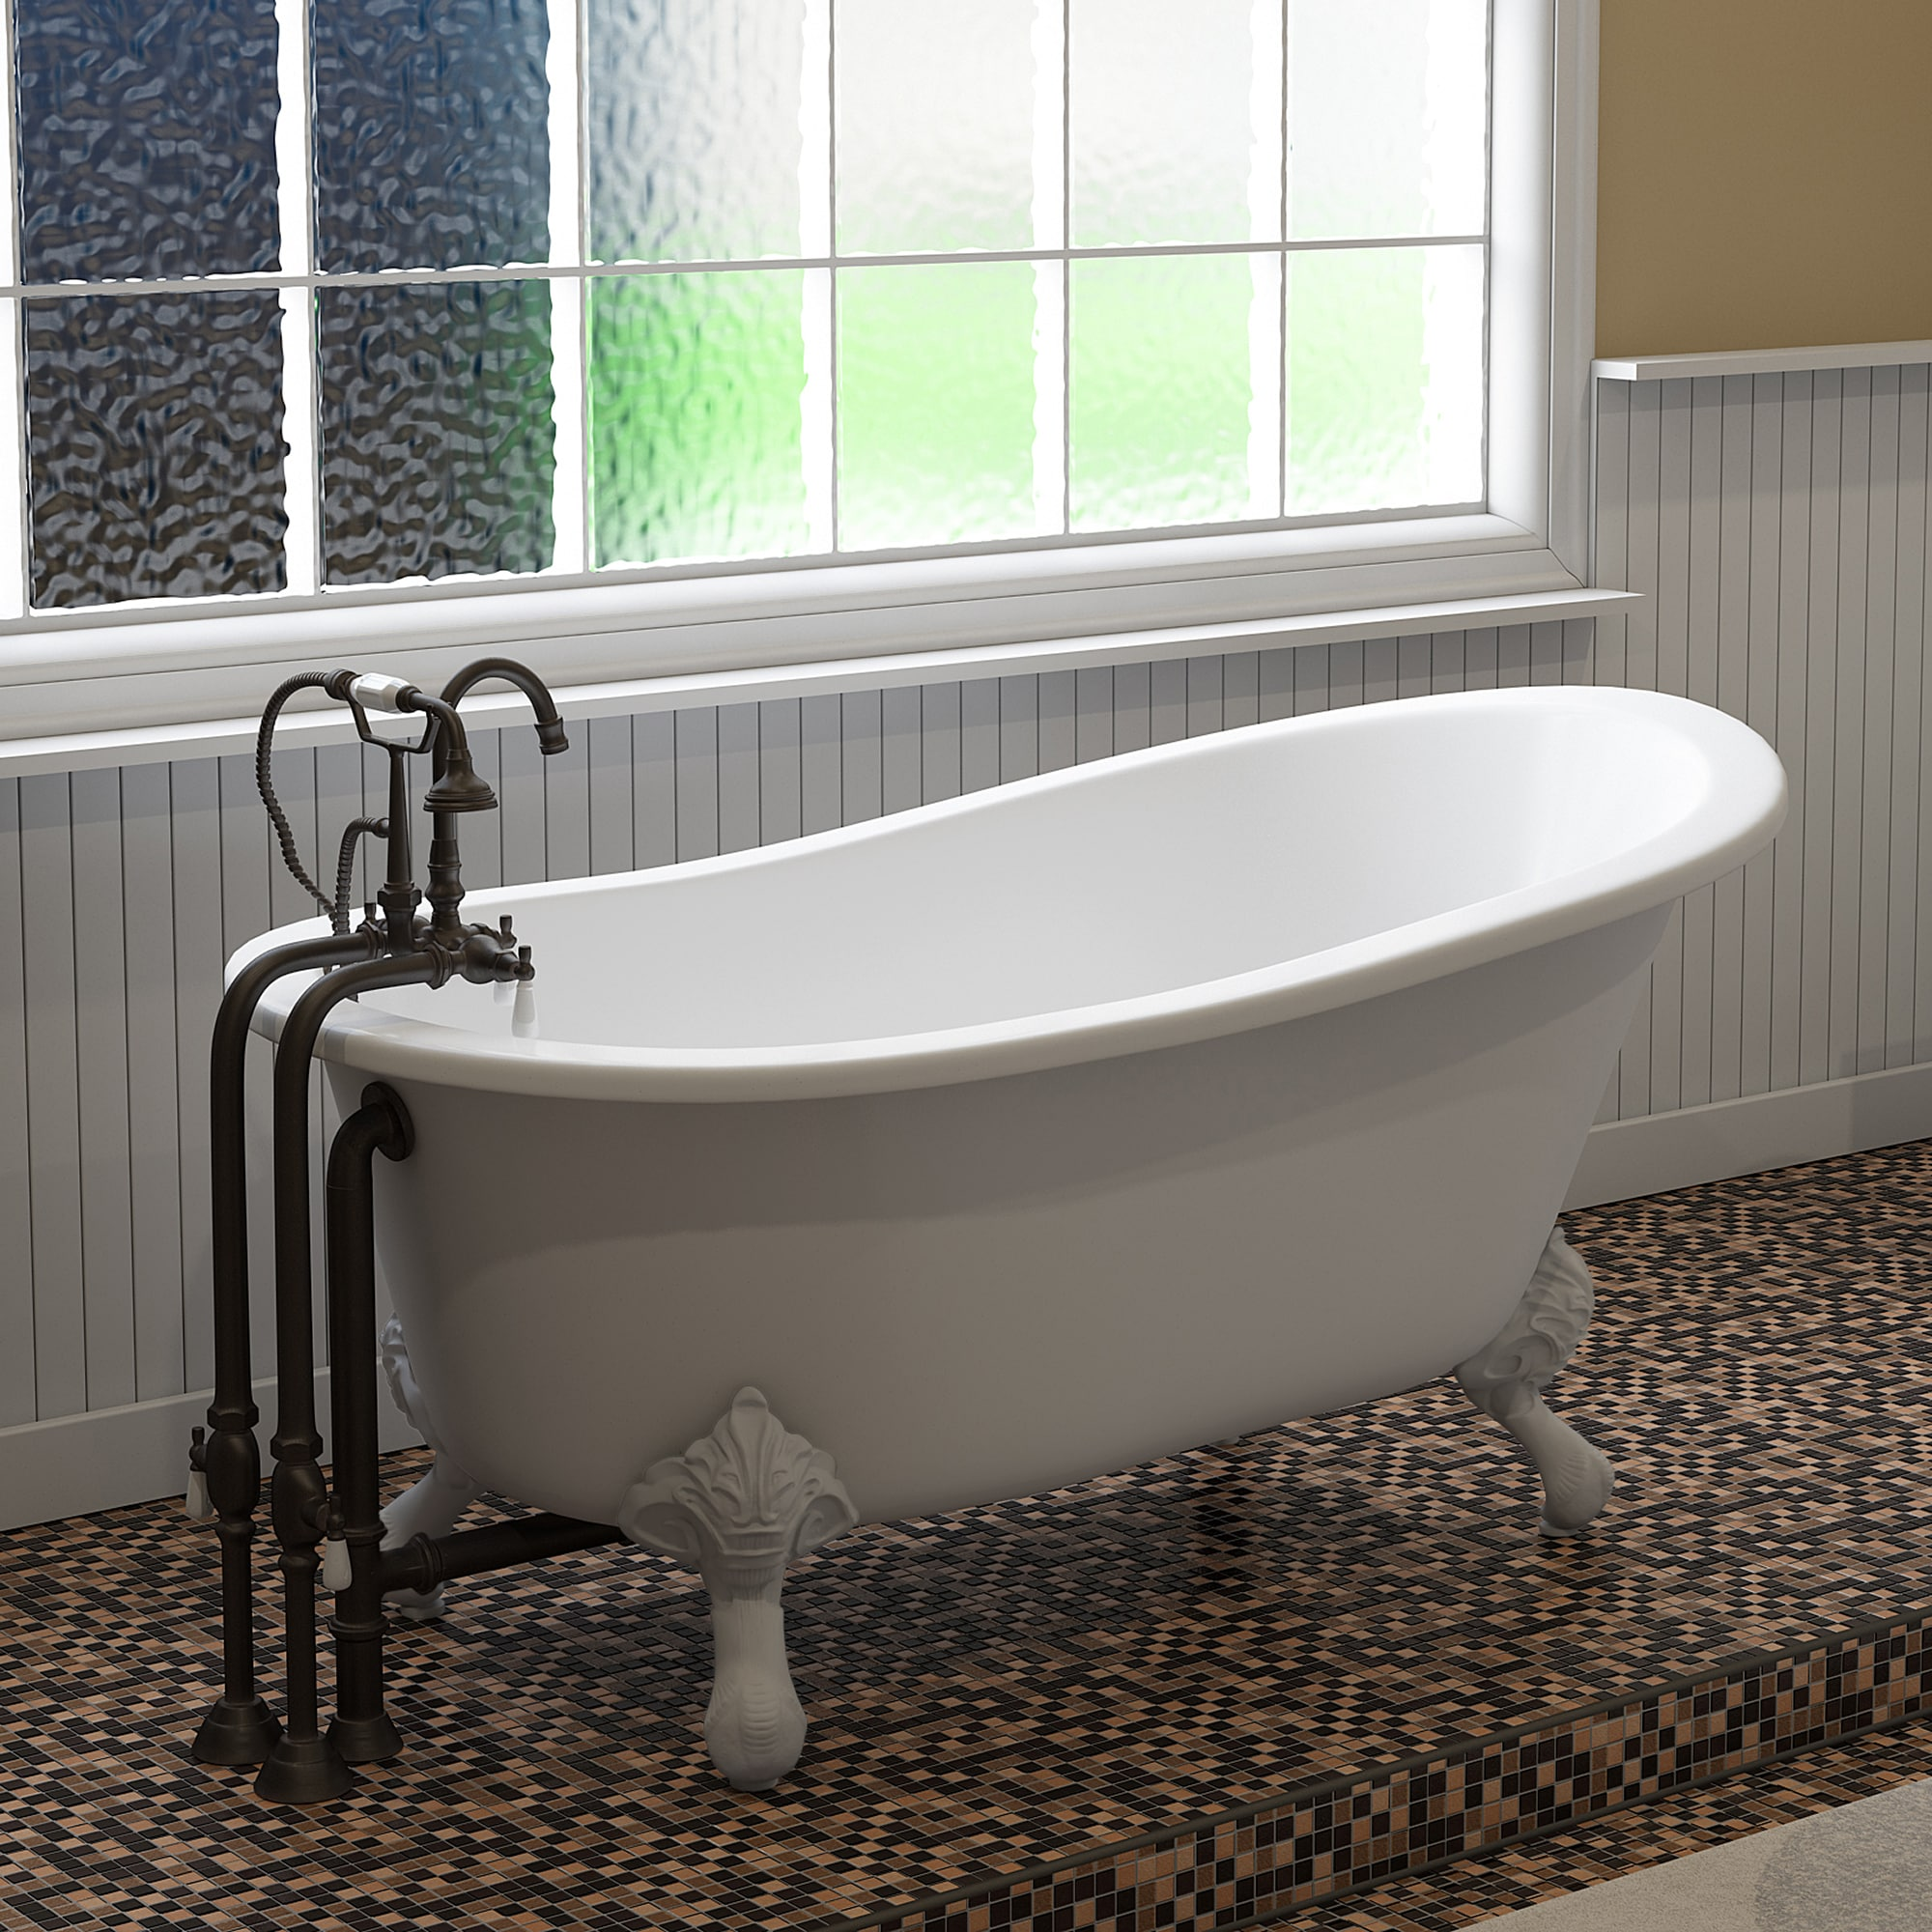 Cast Iron Slipper Clawfoot Tub With Freestanding Faucet